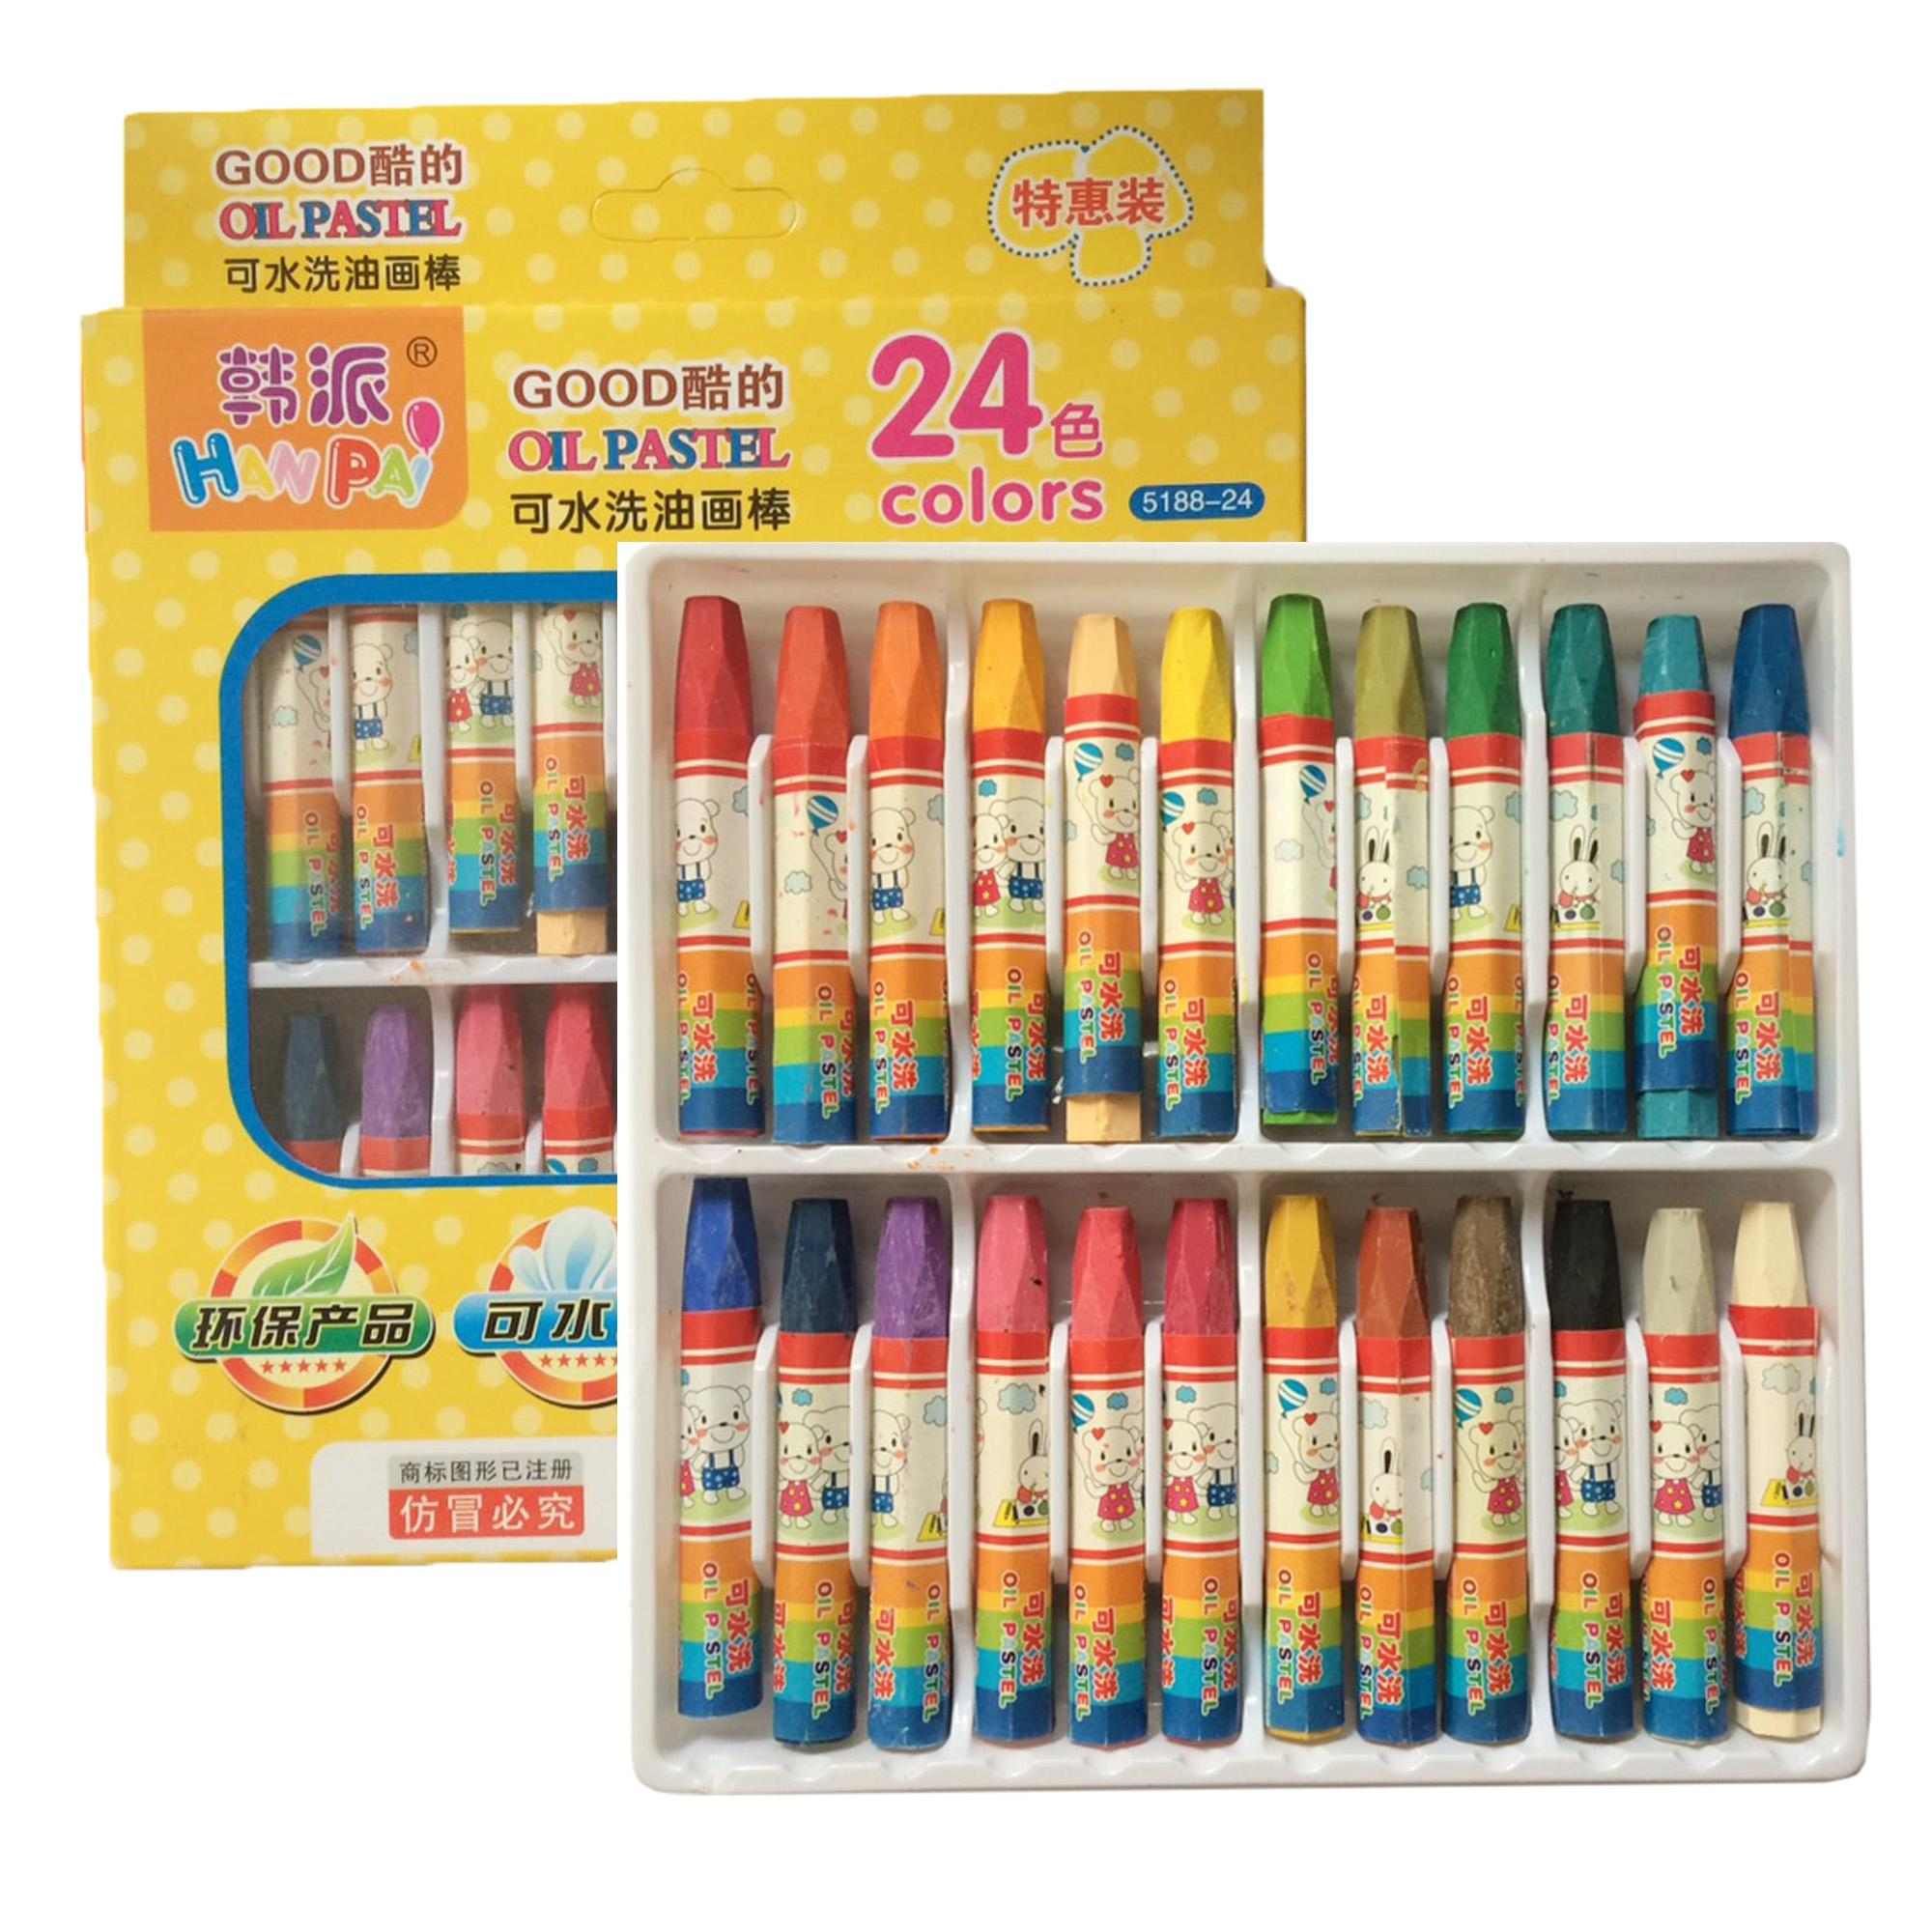 24 Colors Non-Toxic Oil Soft Pastel Childrens Galley Drawing Crayons Set Kids 238g By Geneva Online Shop.